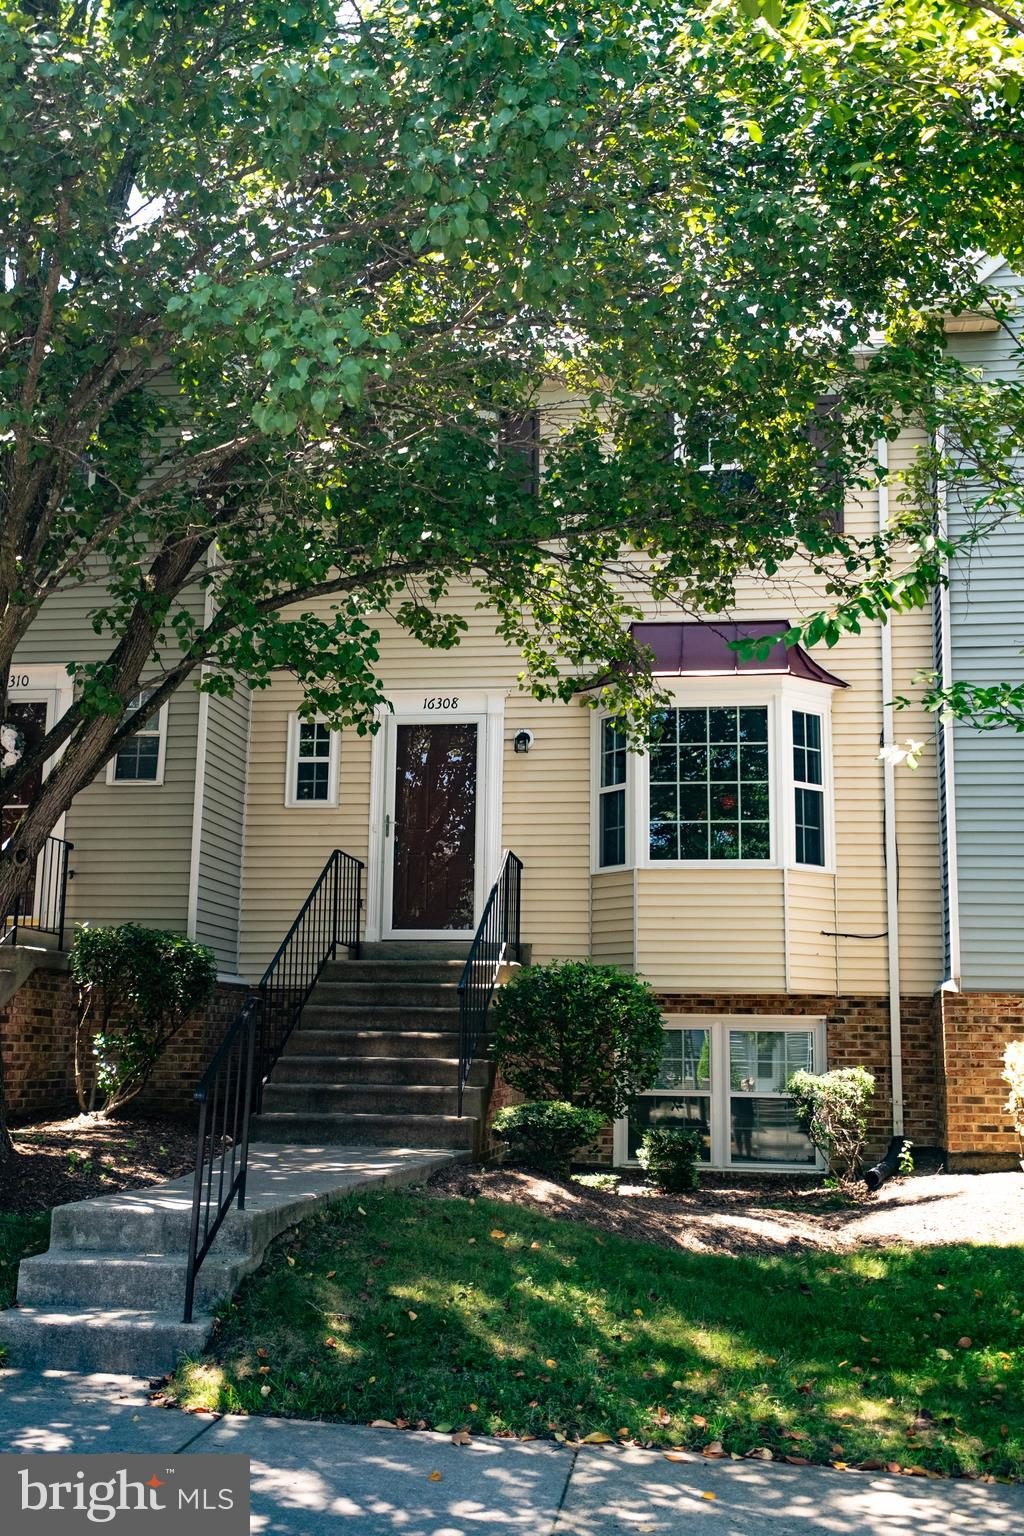 Newly renovated 3 Bedroom, 2.5 Bath Townhouse/Condo with new appliances, granite countertops, new 60